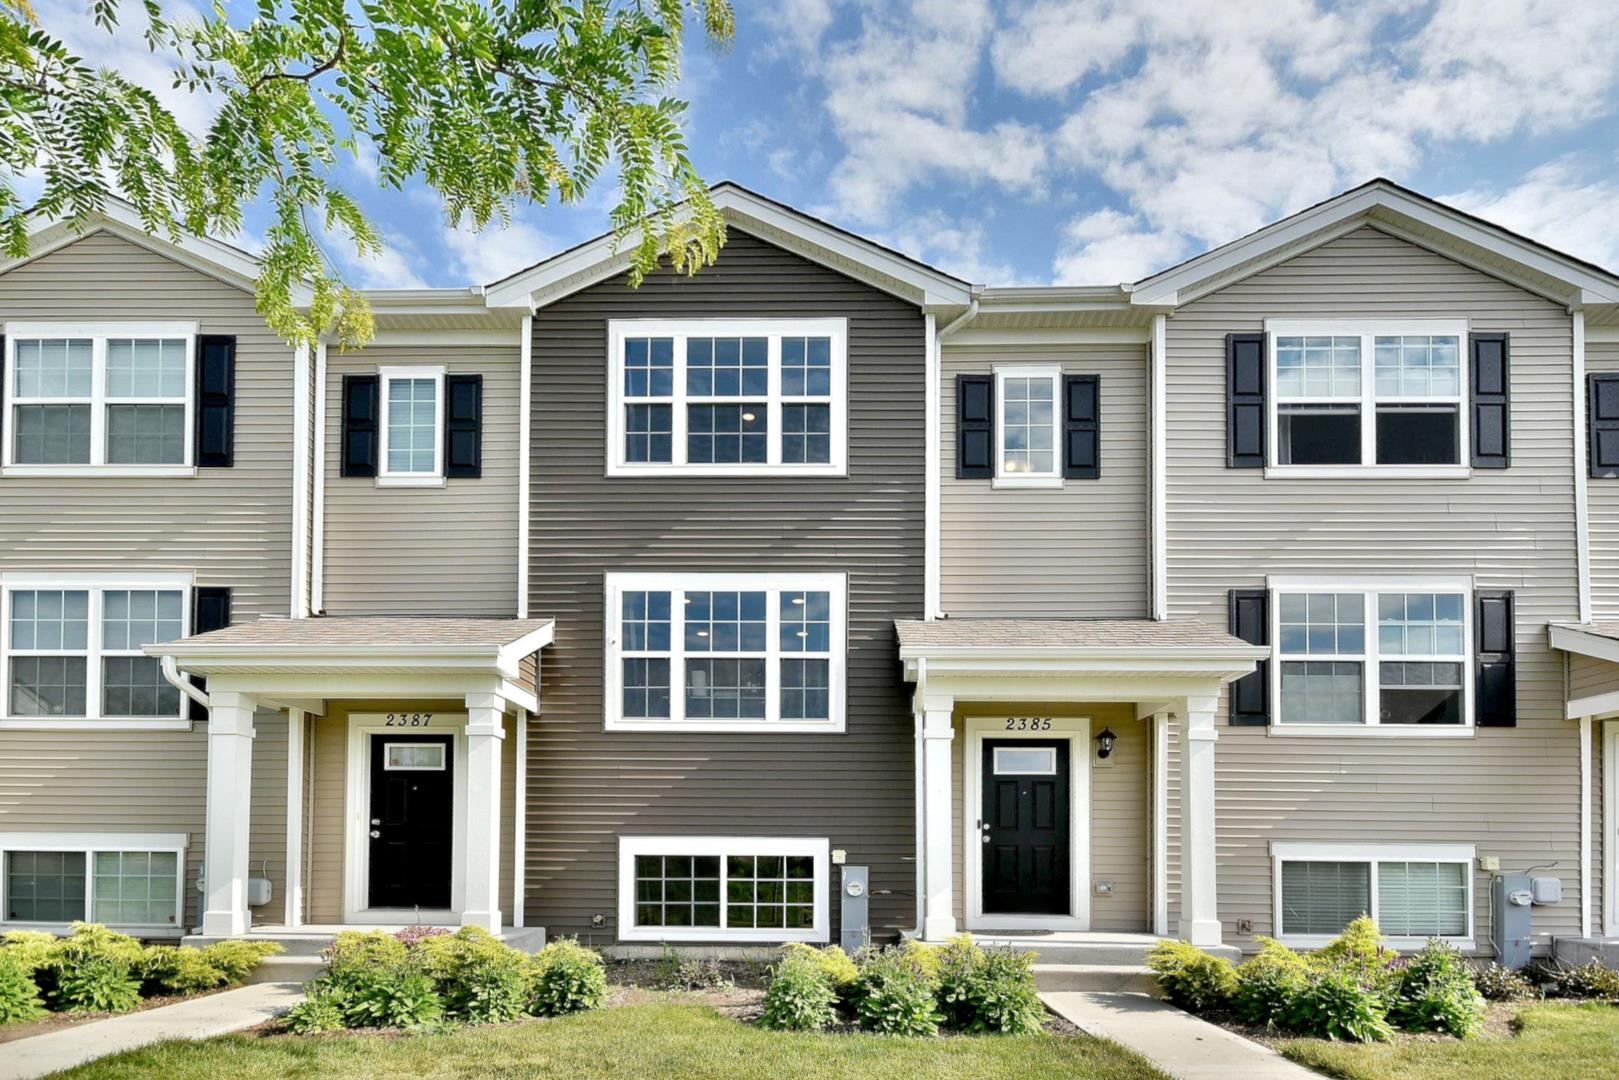 2385 Upland Road #2293, Pingree Grove, IL 60140 - #: 10760378